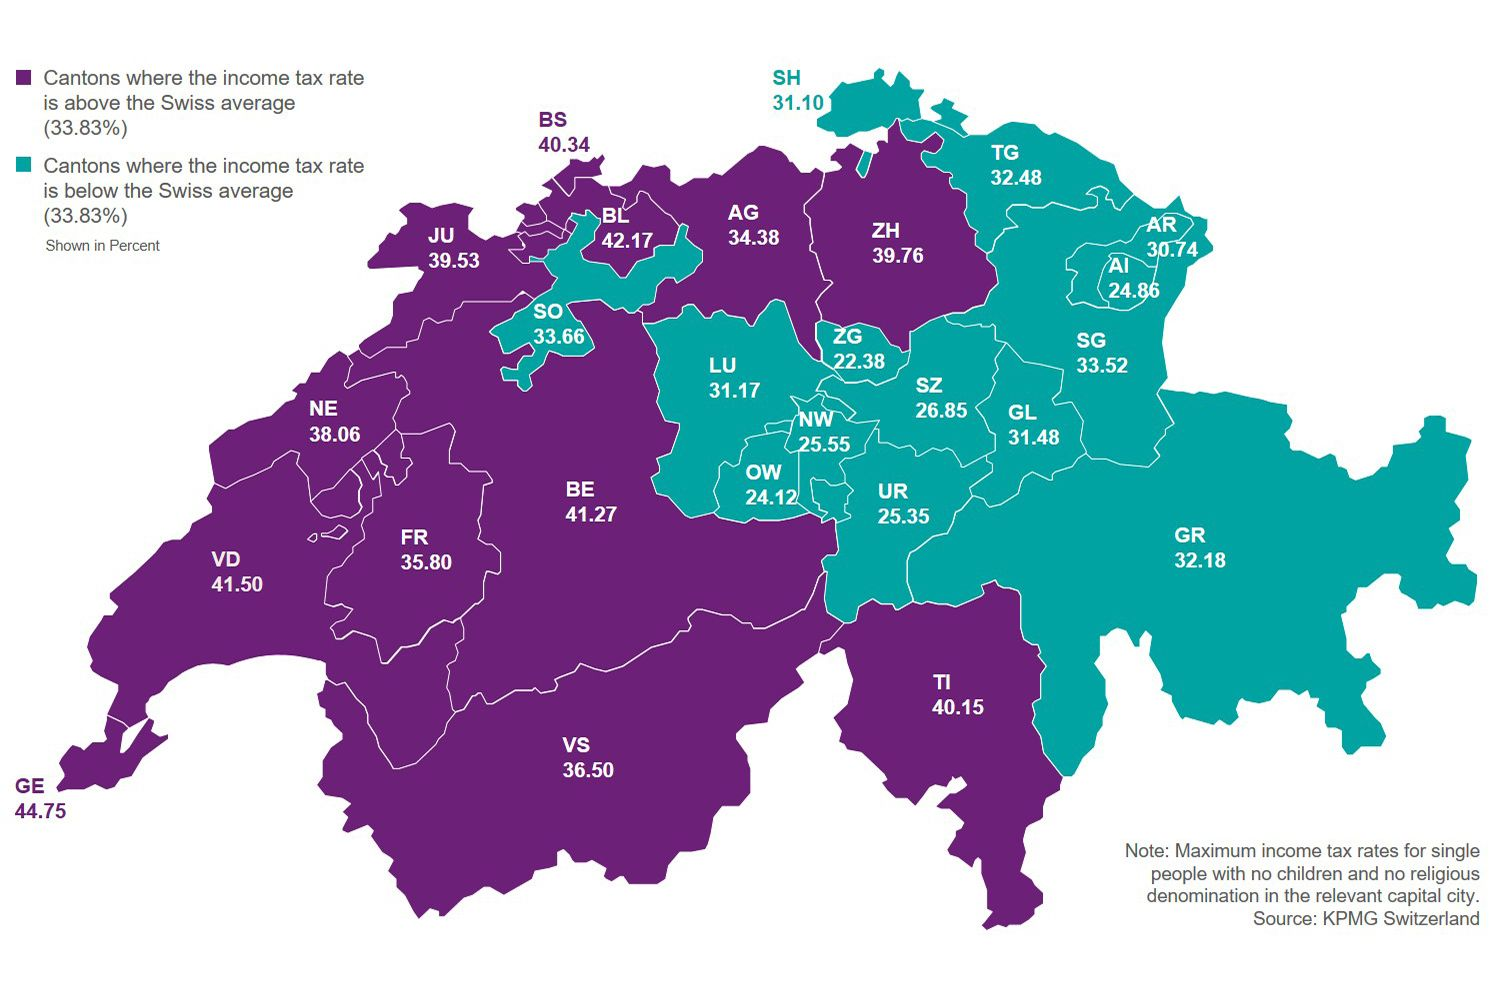 Income tax rates of Swiss cantons at a glance